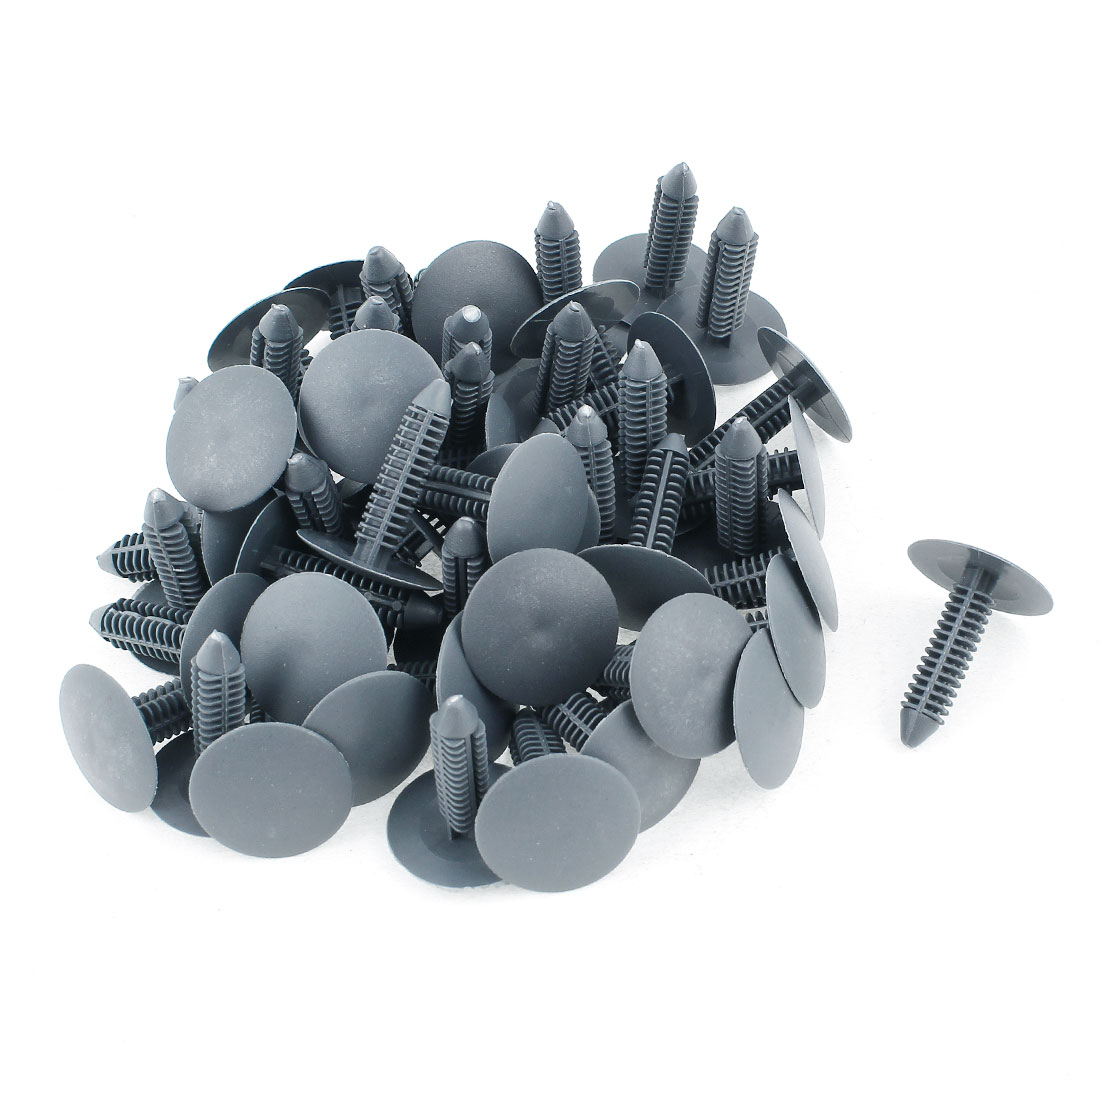 Hole Universal Gray Plastic Round Buckle Rivets Fastener 7 x 31mm 50 Pcs